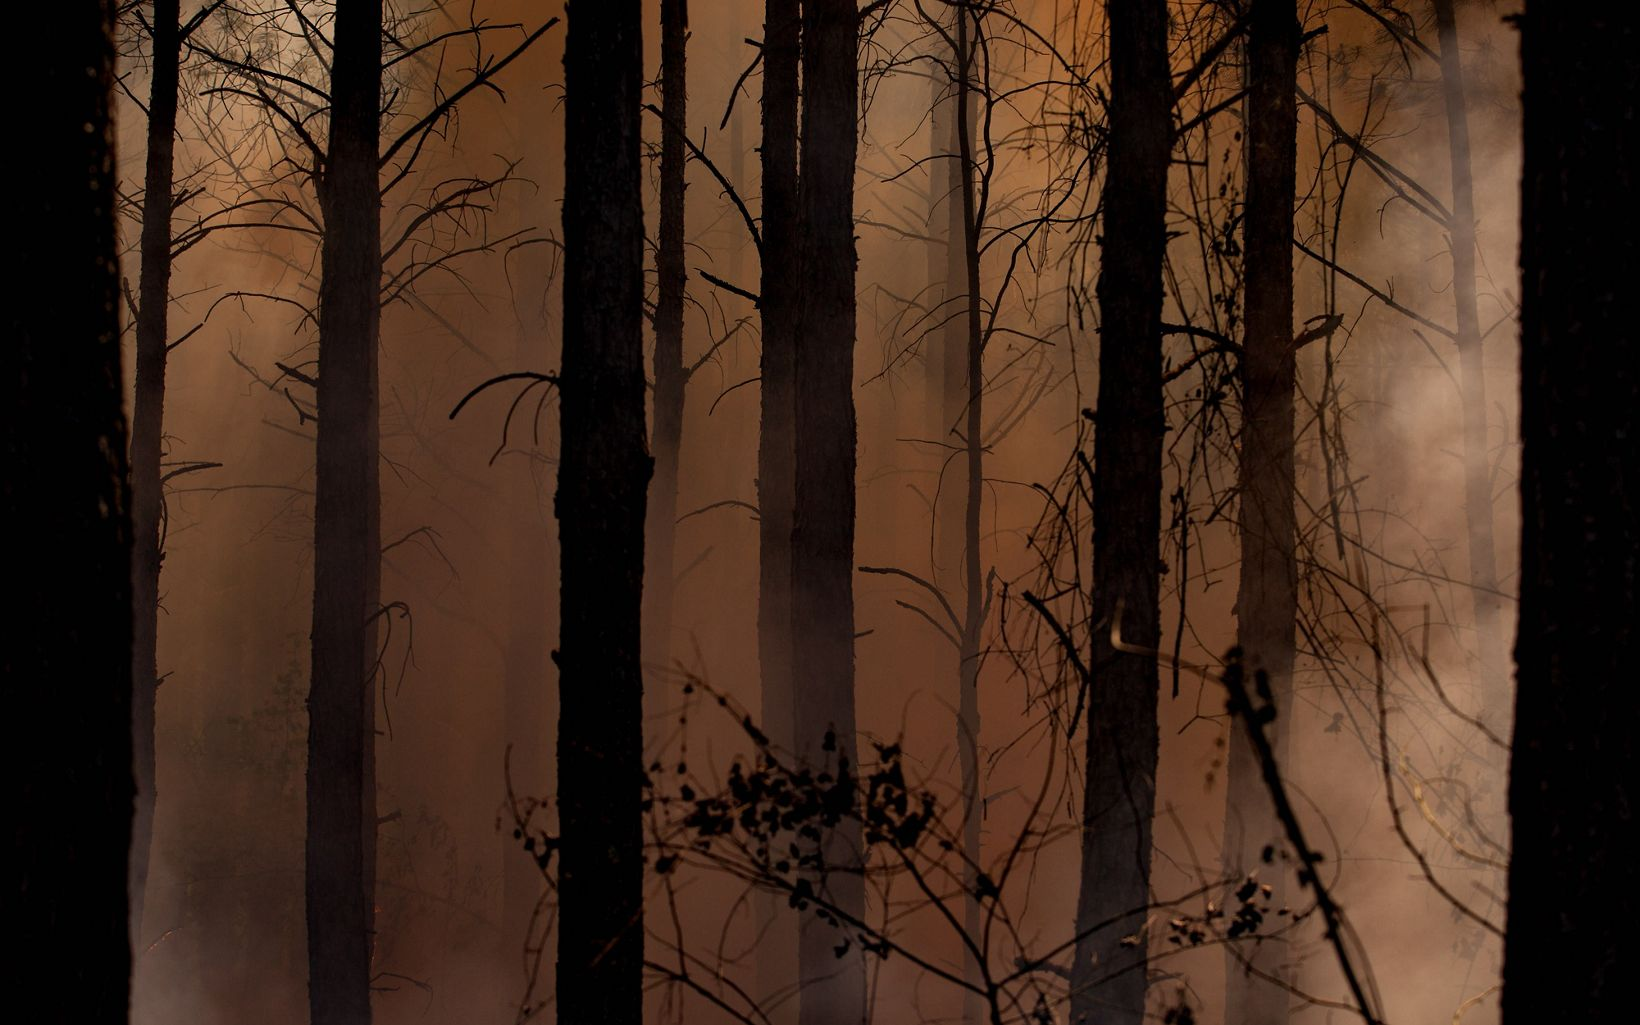 Light filters through the smoke during the largest ever controlled burn ignited at Piney Grove Preserve.